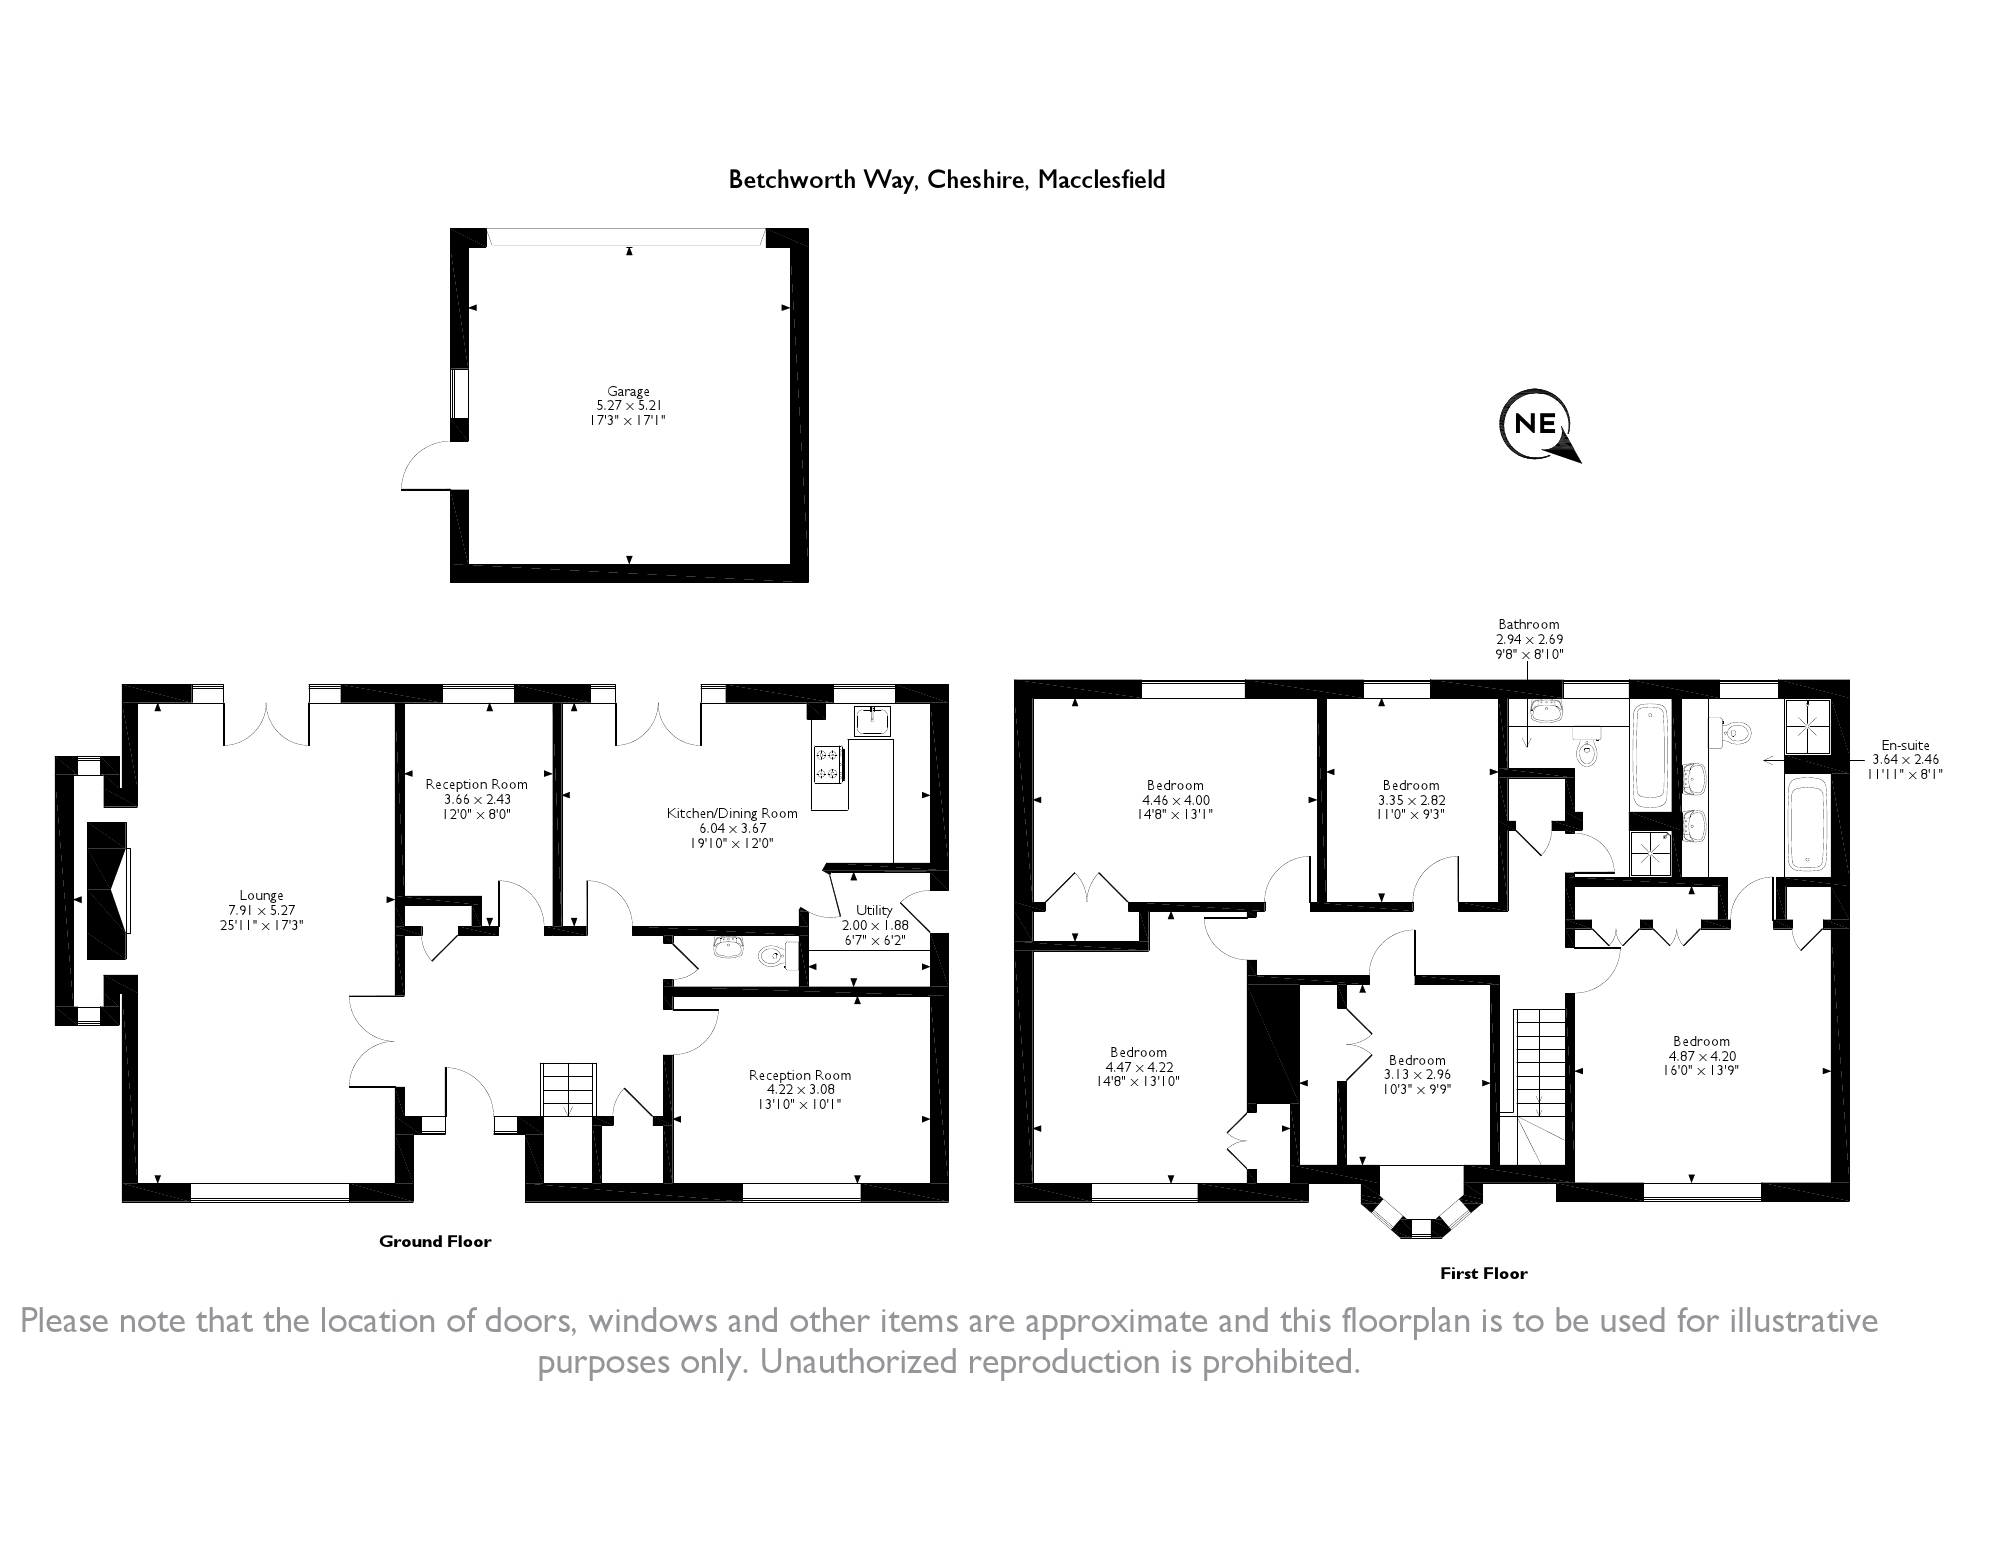 Macclesfield, Cheshire floor plan